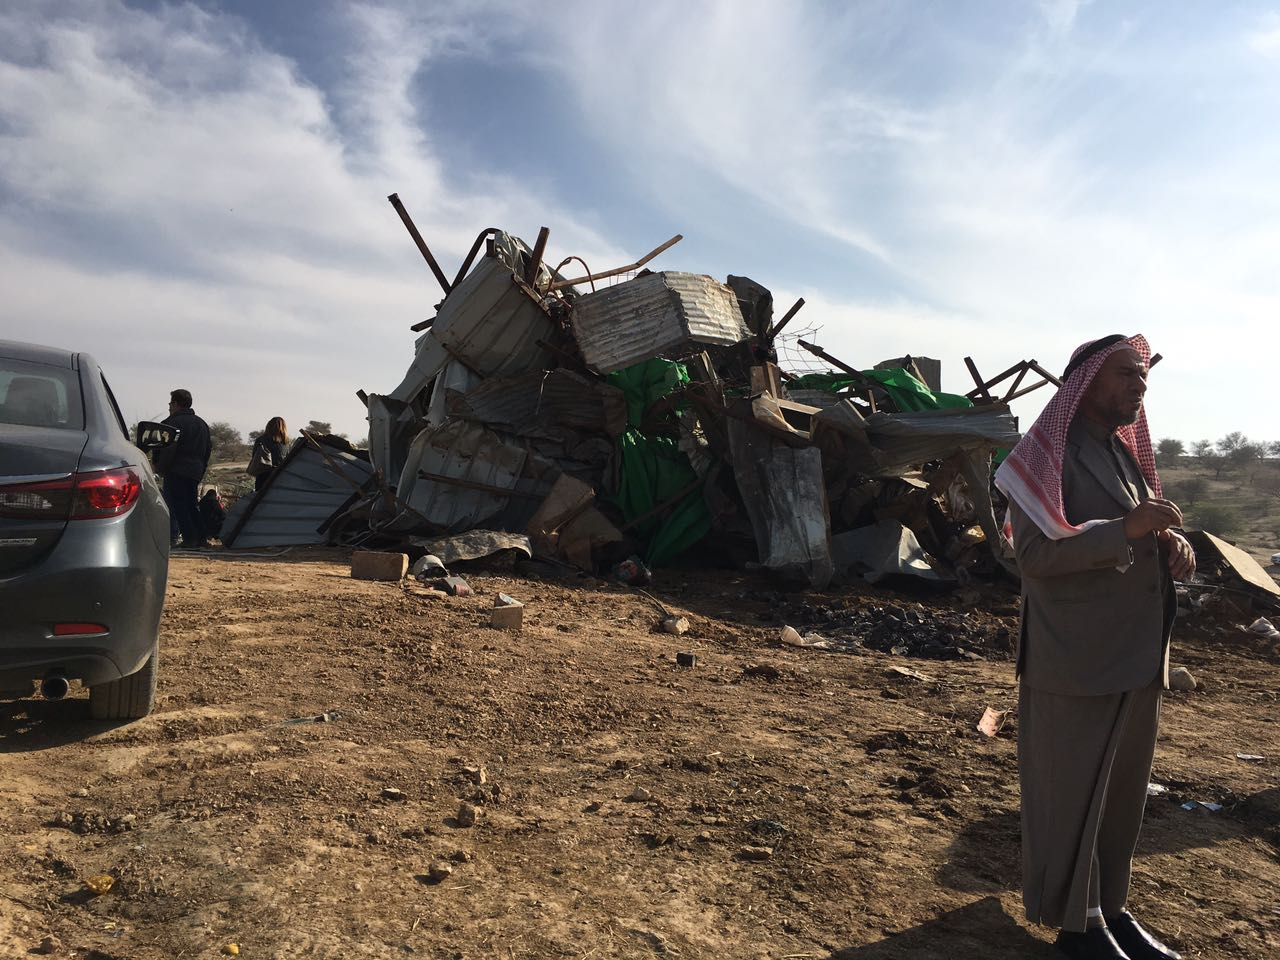 Bedouin man standing by a destroyed home in Umm el-Hiran village. Wednesday January 18, 2016. Source: Global Voices